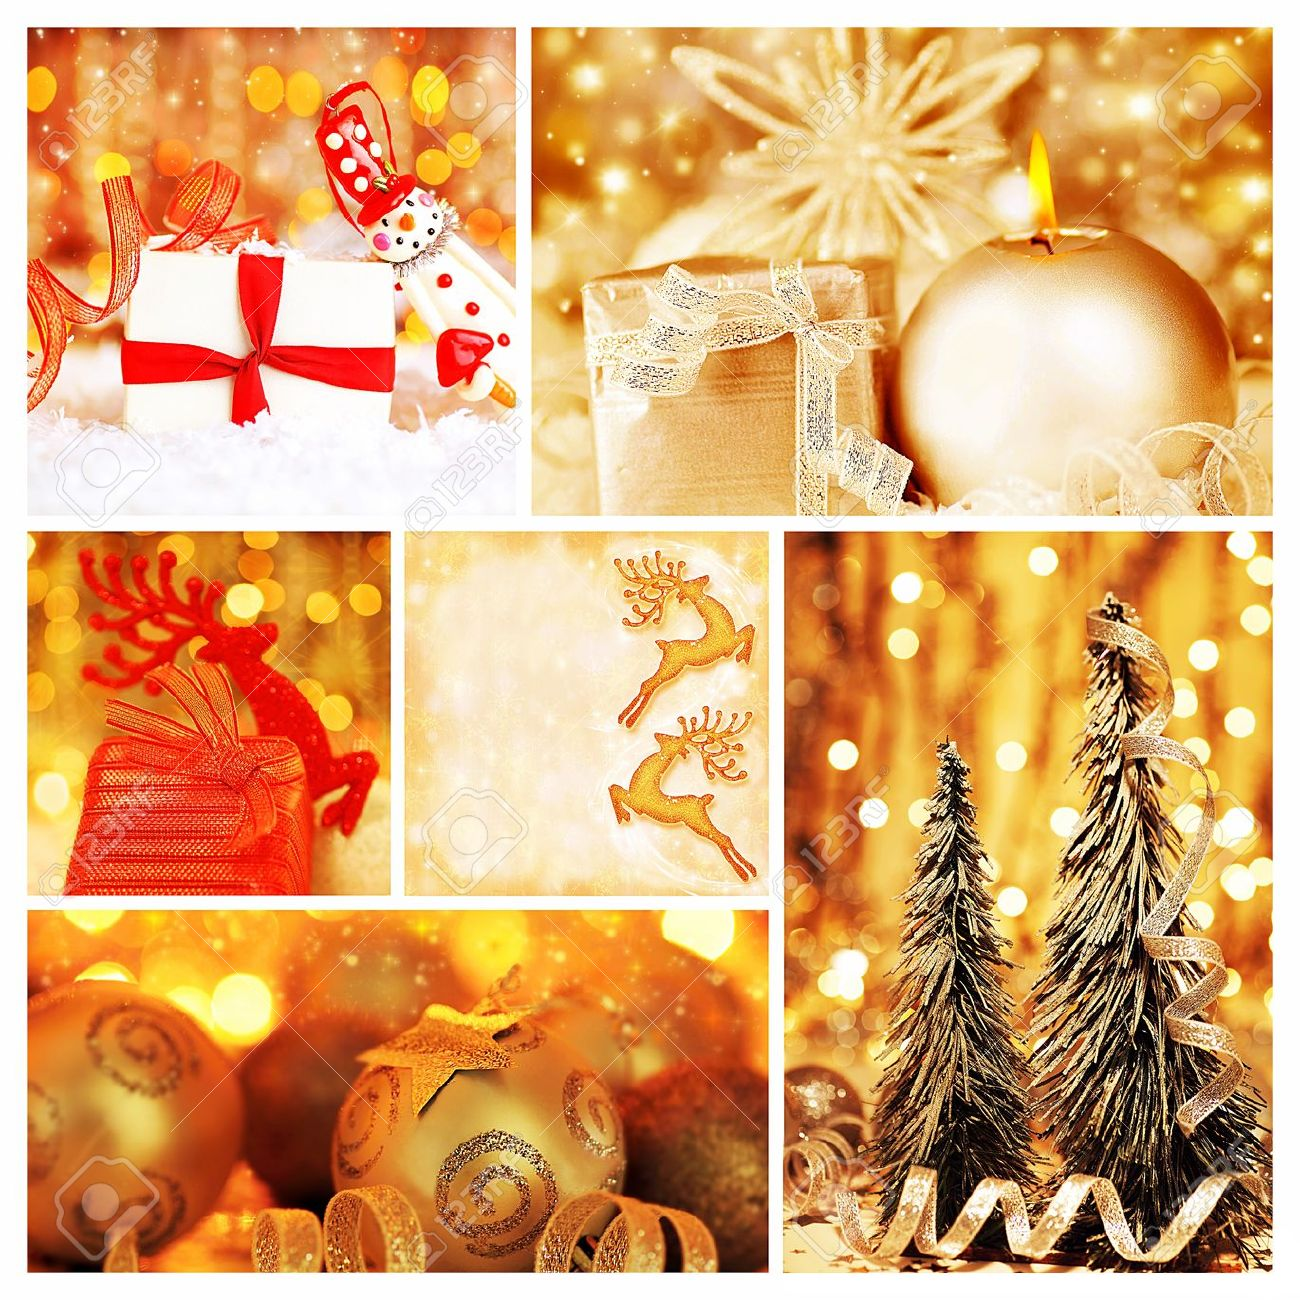 Golden Collage Of Christmas Tree Decorations, Diversity Of Gold Ornaments,  Winter Holiday Gifts And